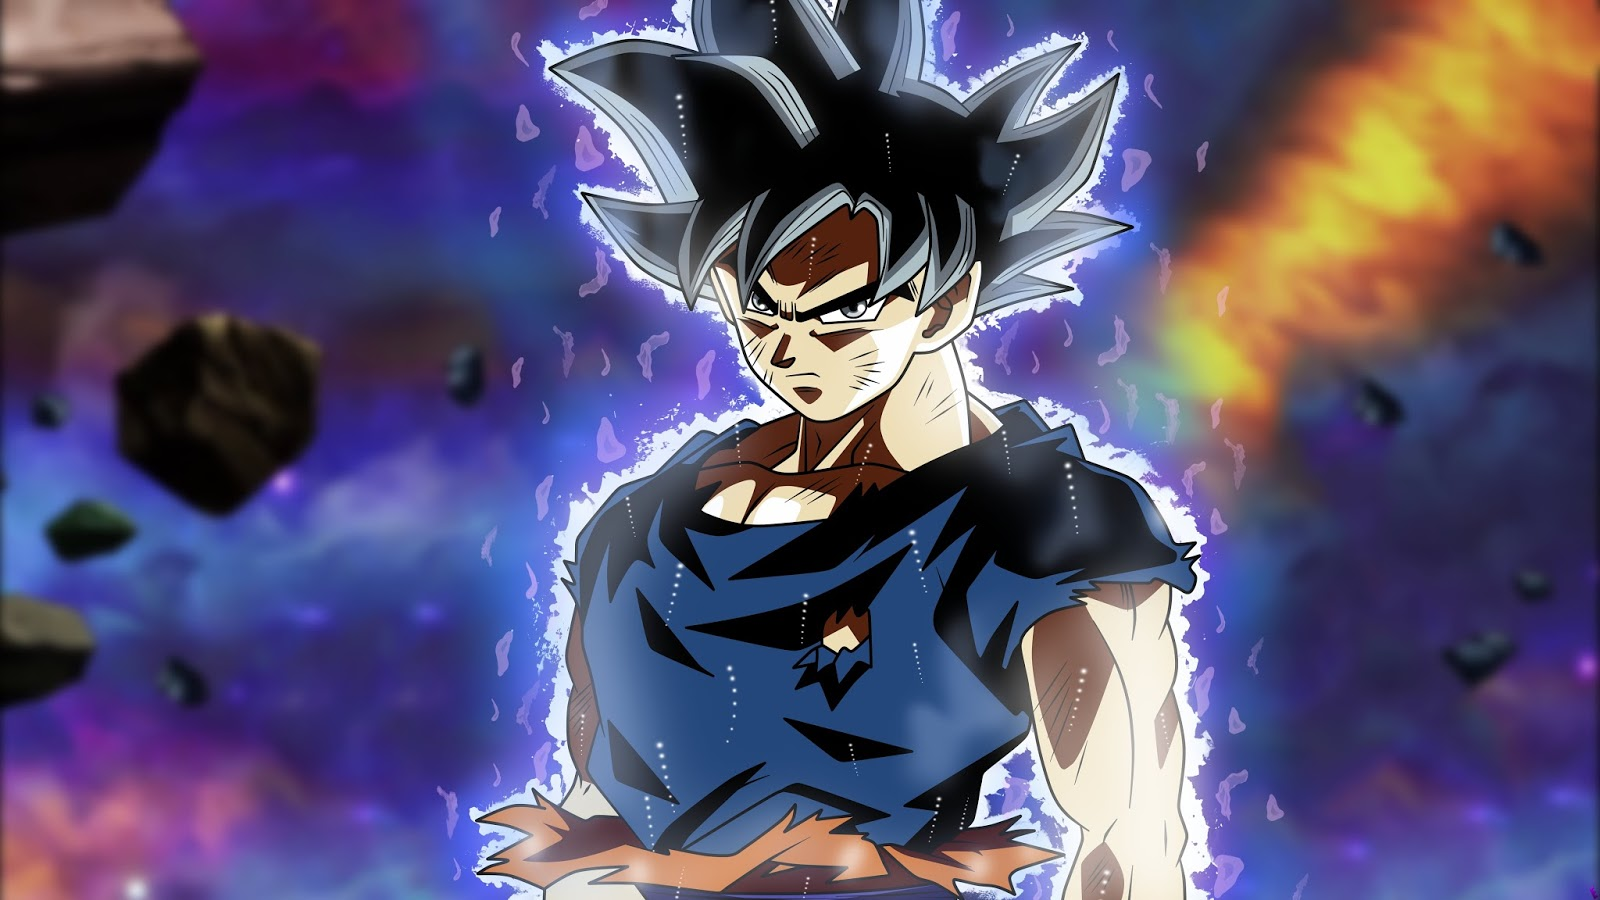 Son Goku With Information You May Not Know